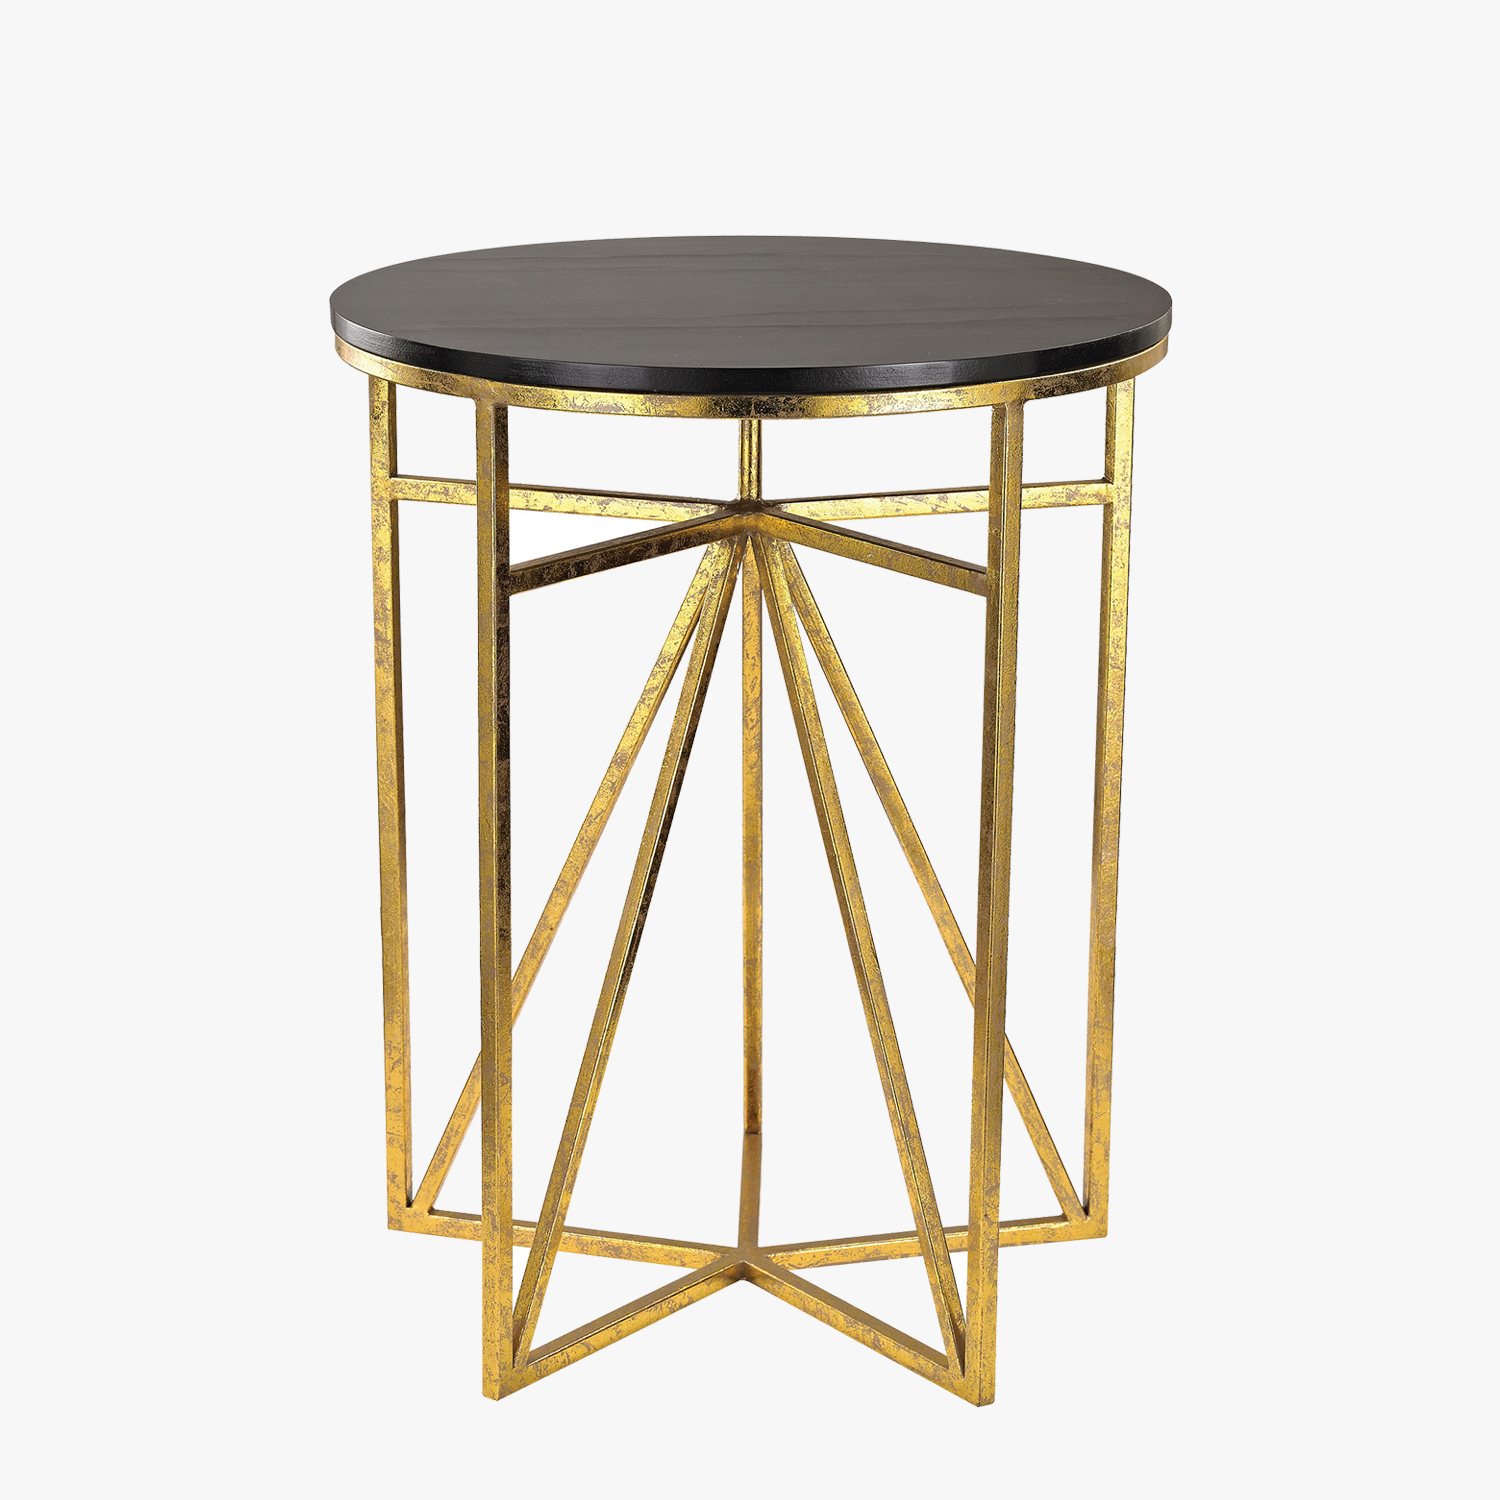 etoile antique gold accent table dear keaton end with drawer extra tall lamps vintage industrial side inch height nightstand barn door coffee round bistro chair cushions ikea pier